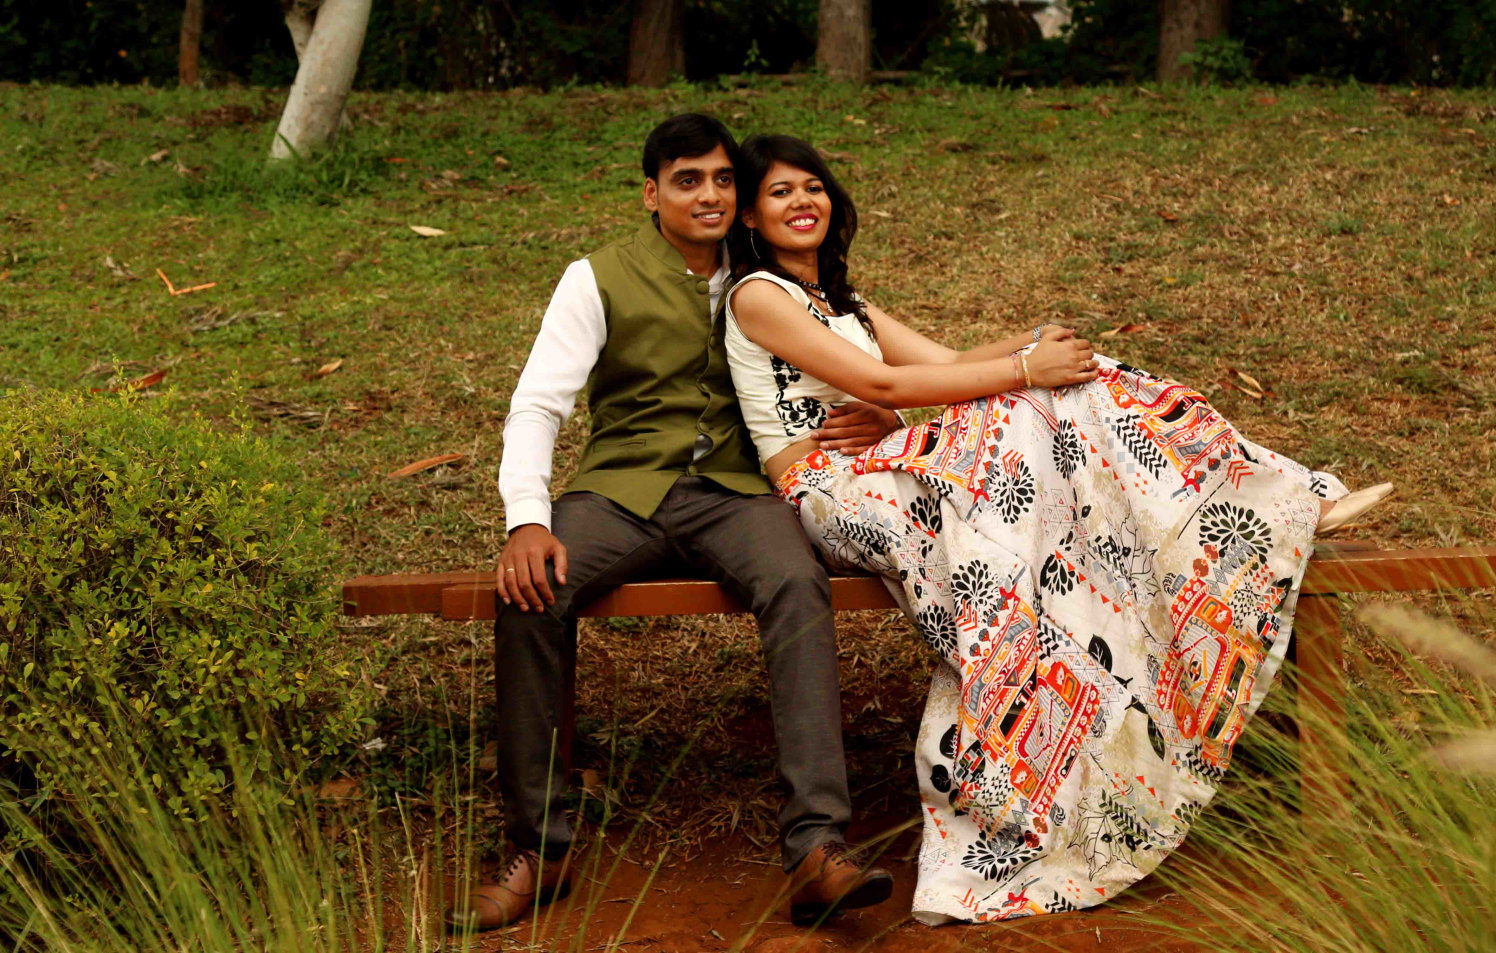 Picturesque Park Backdrop For Photoshoot of Bride and Groom To-Be by Rushil Jadhav Wedding-photography | Weddings Photos & Ideas